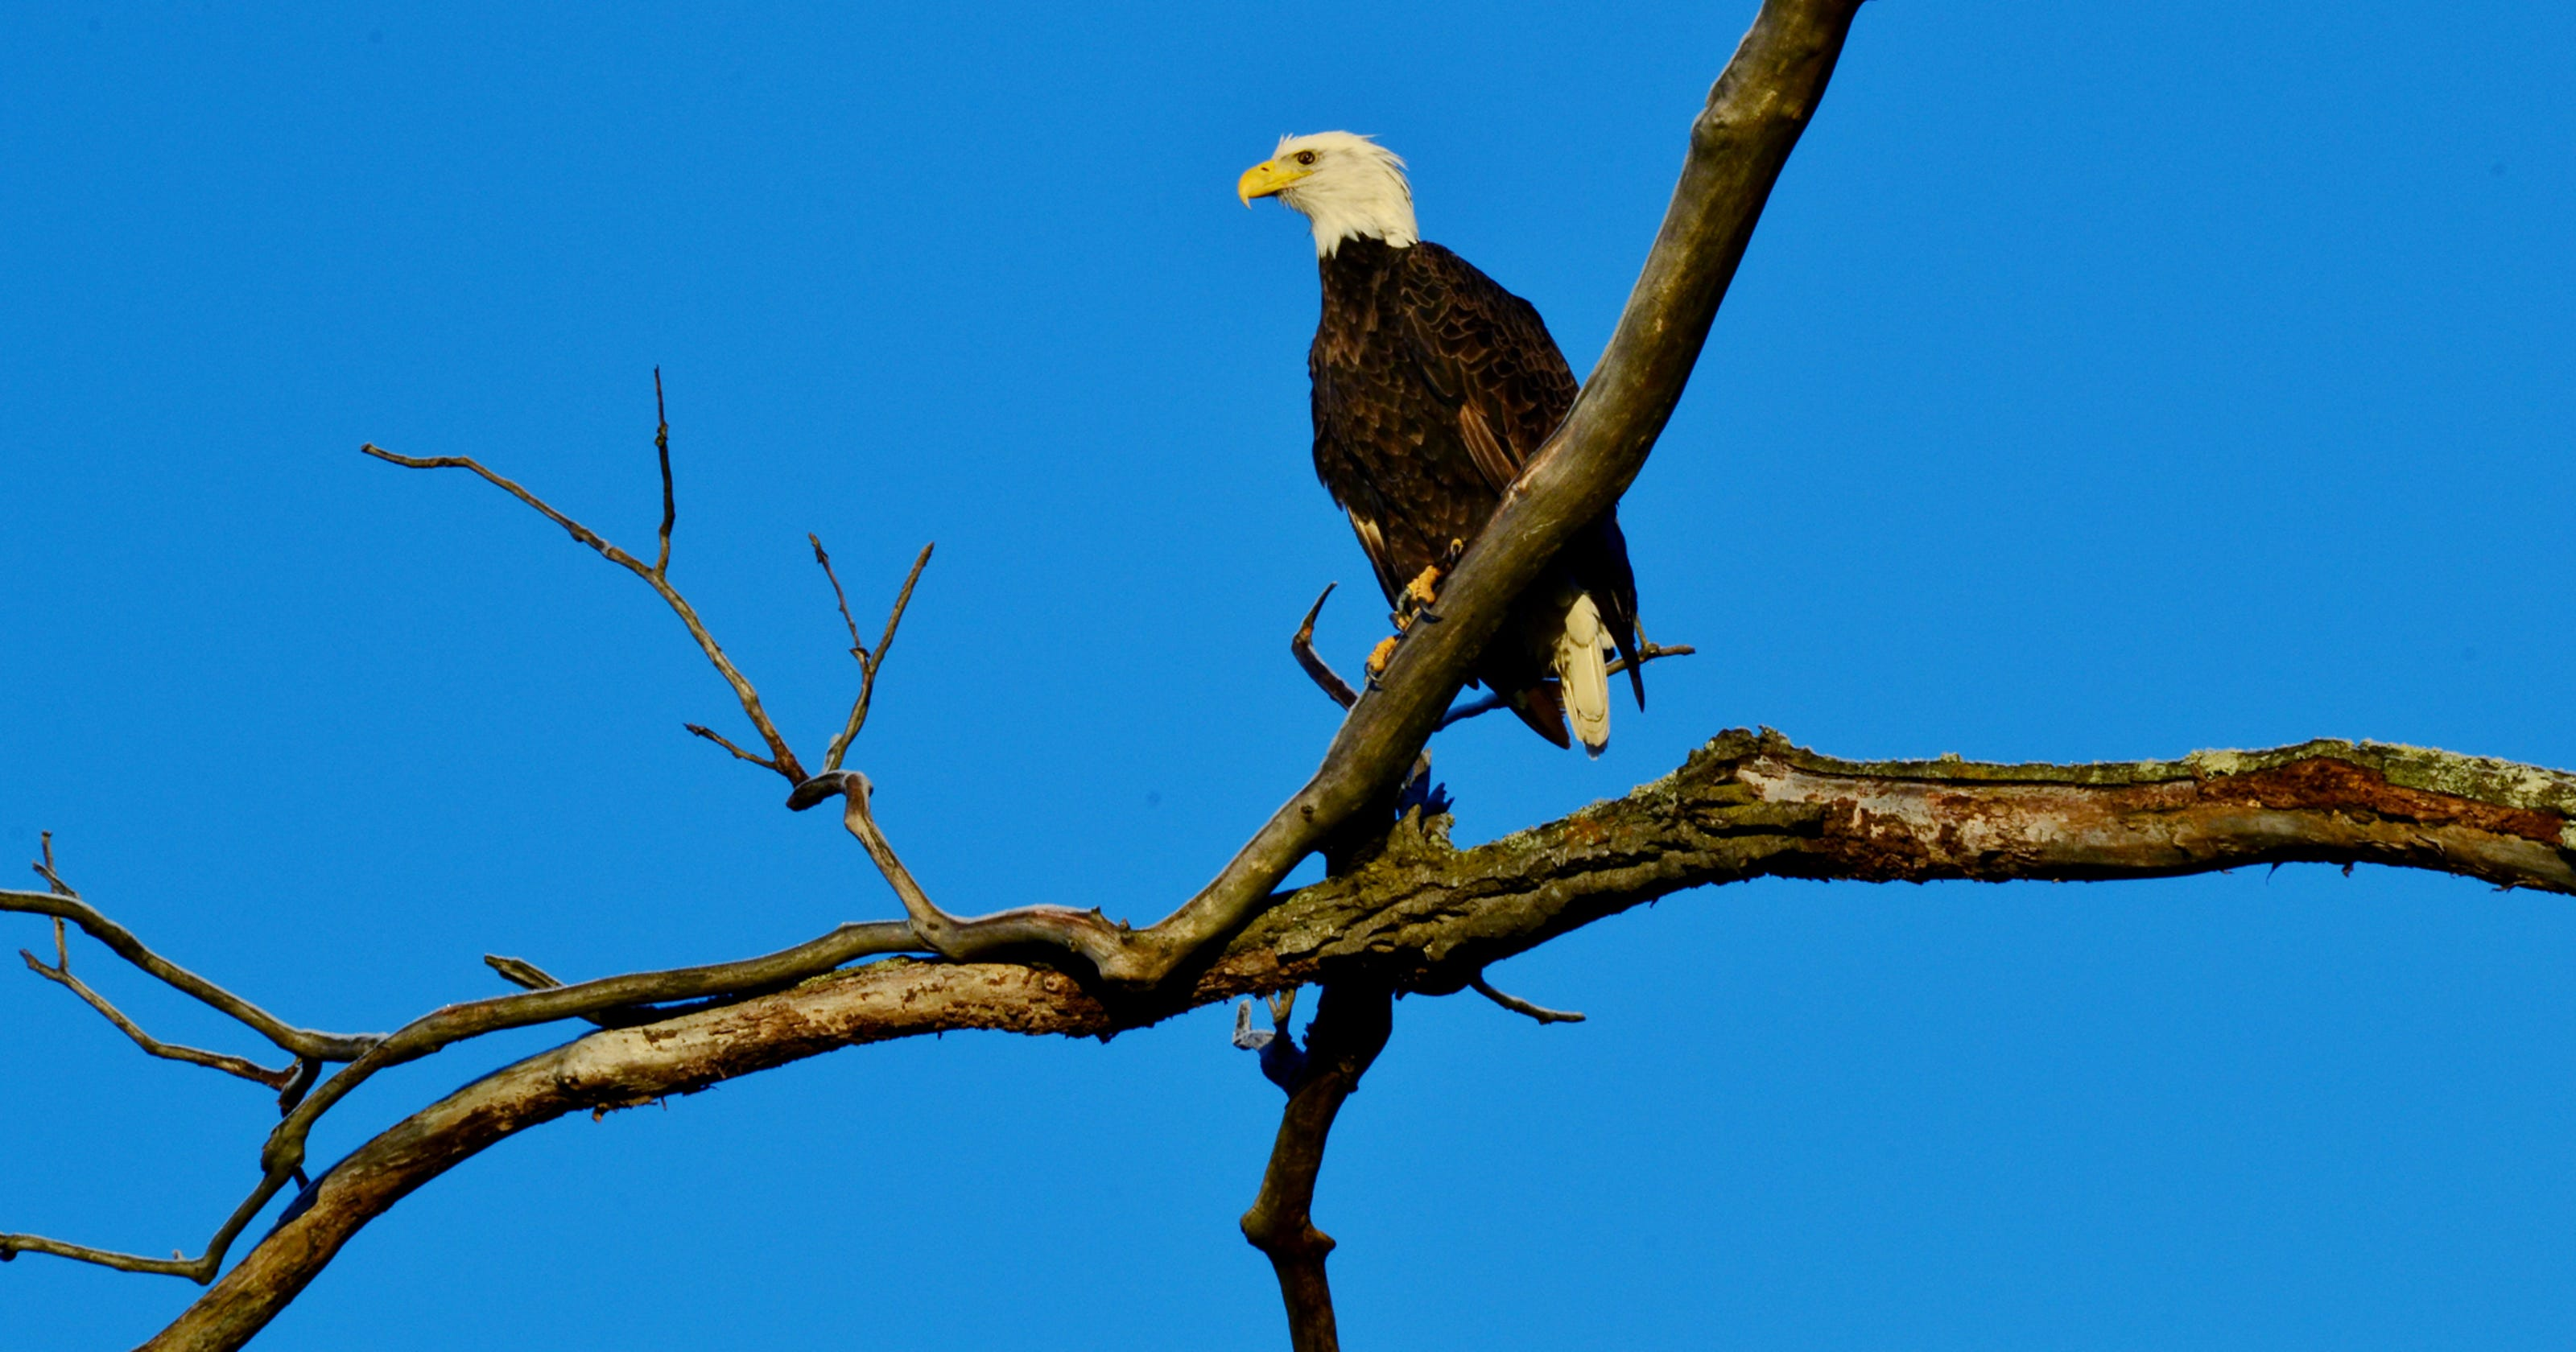 Ms  Cheap: Reelfoot Lake offers great eagle viewing